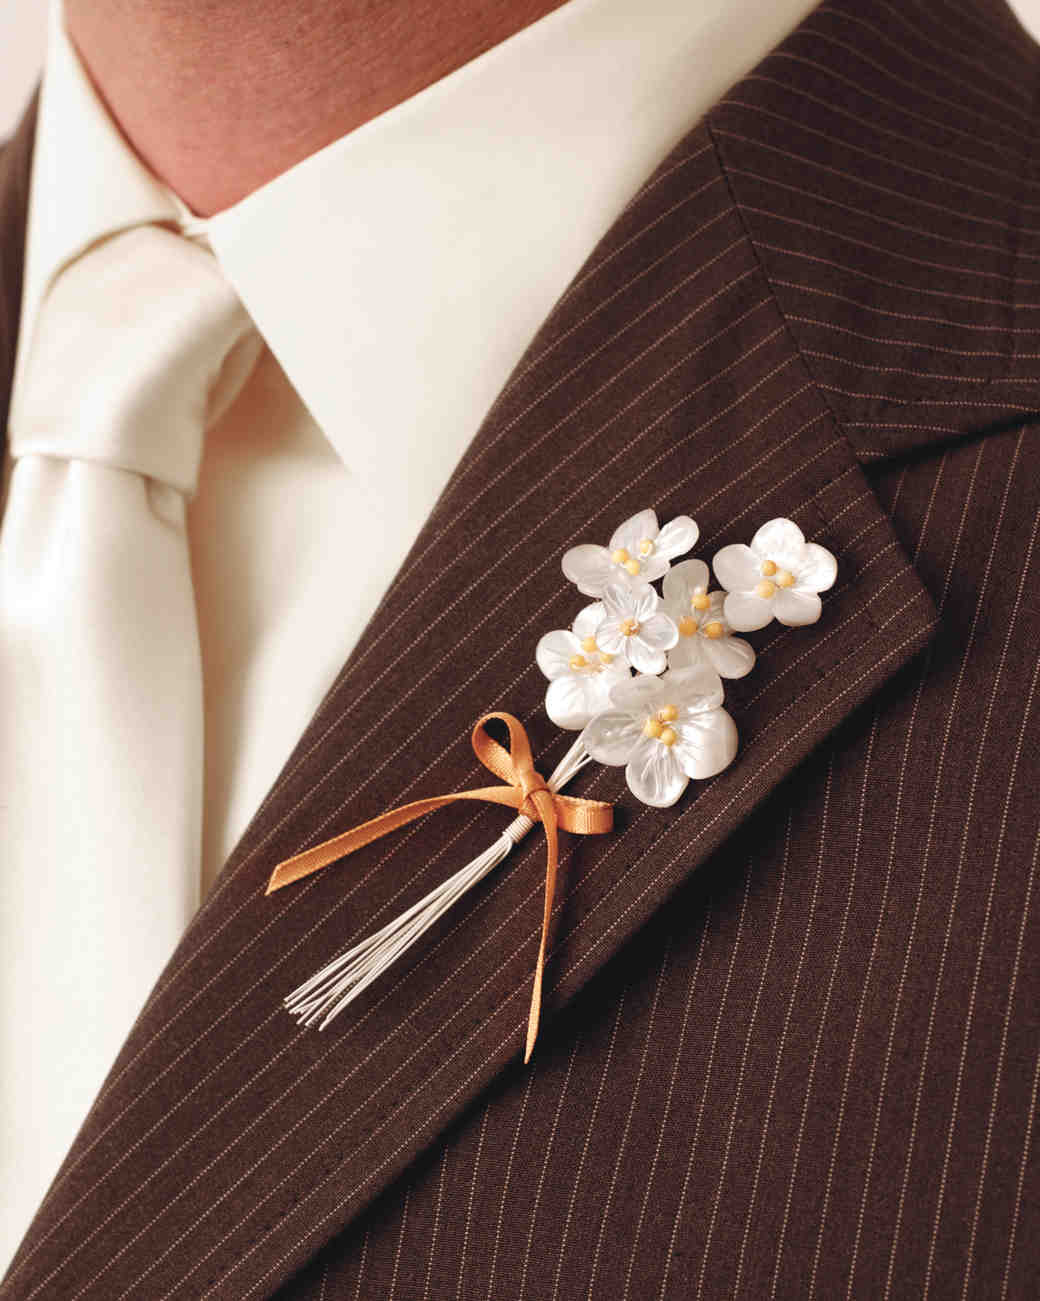 Best ideas about DIY Wedding Boutonniere . Save or Pin DIY Boutonnière Ideas for Your Wedding Now.